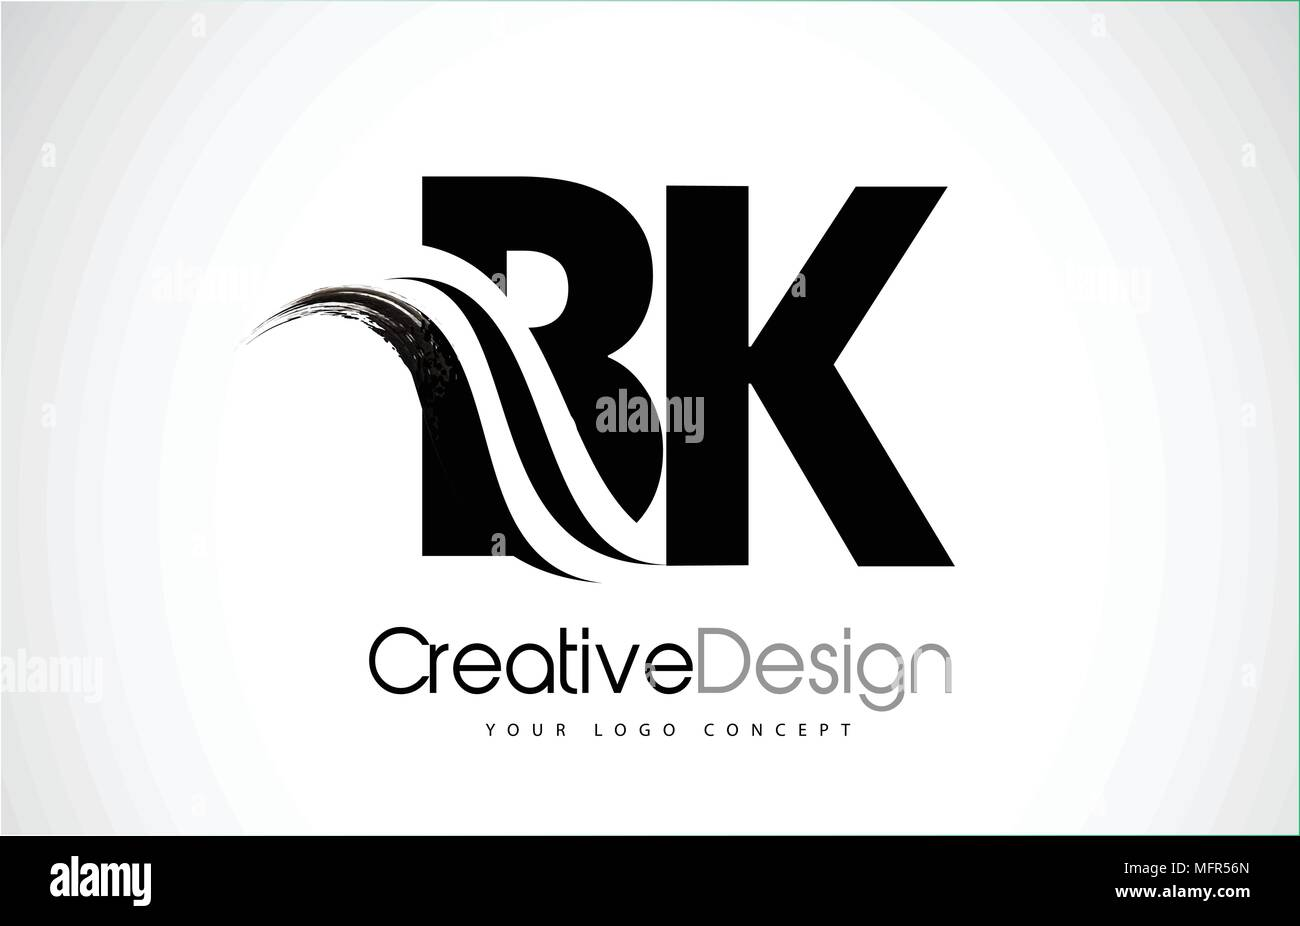 Bk B K Creative Modern Black Letters Logo Design With Brush